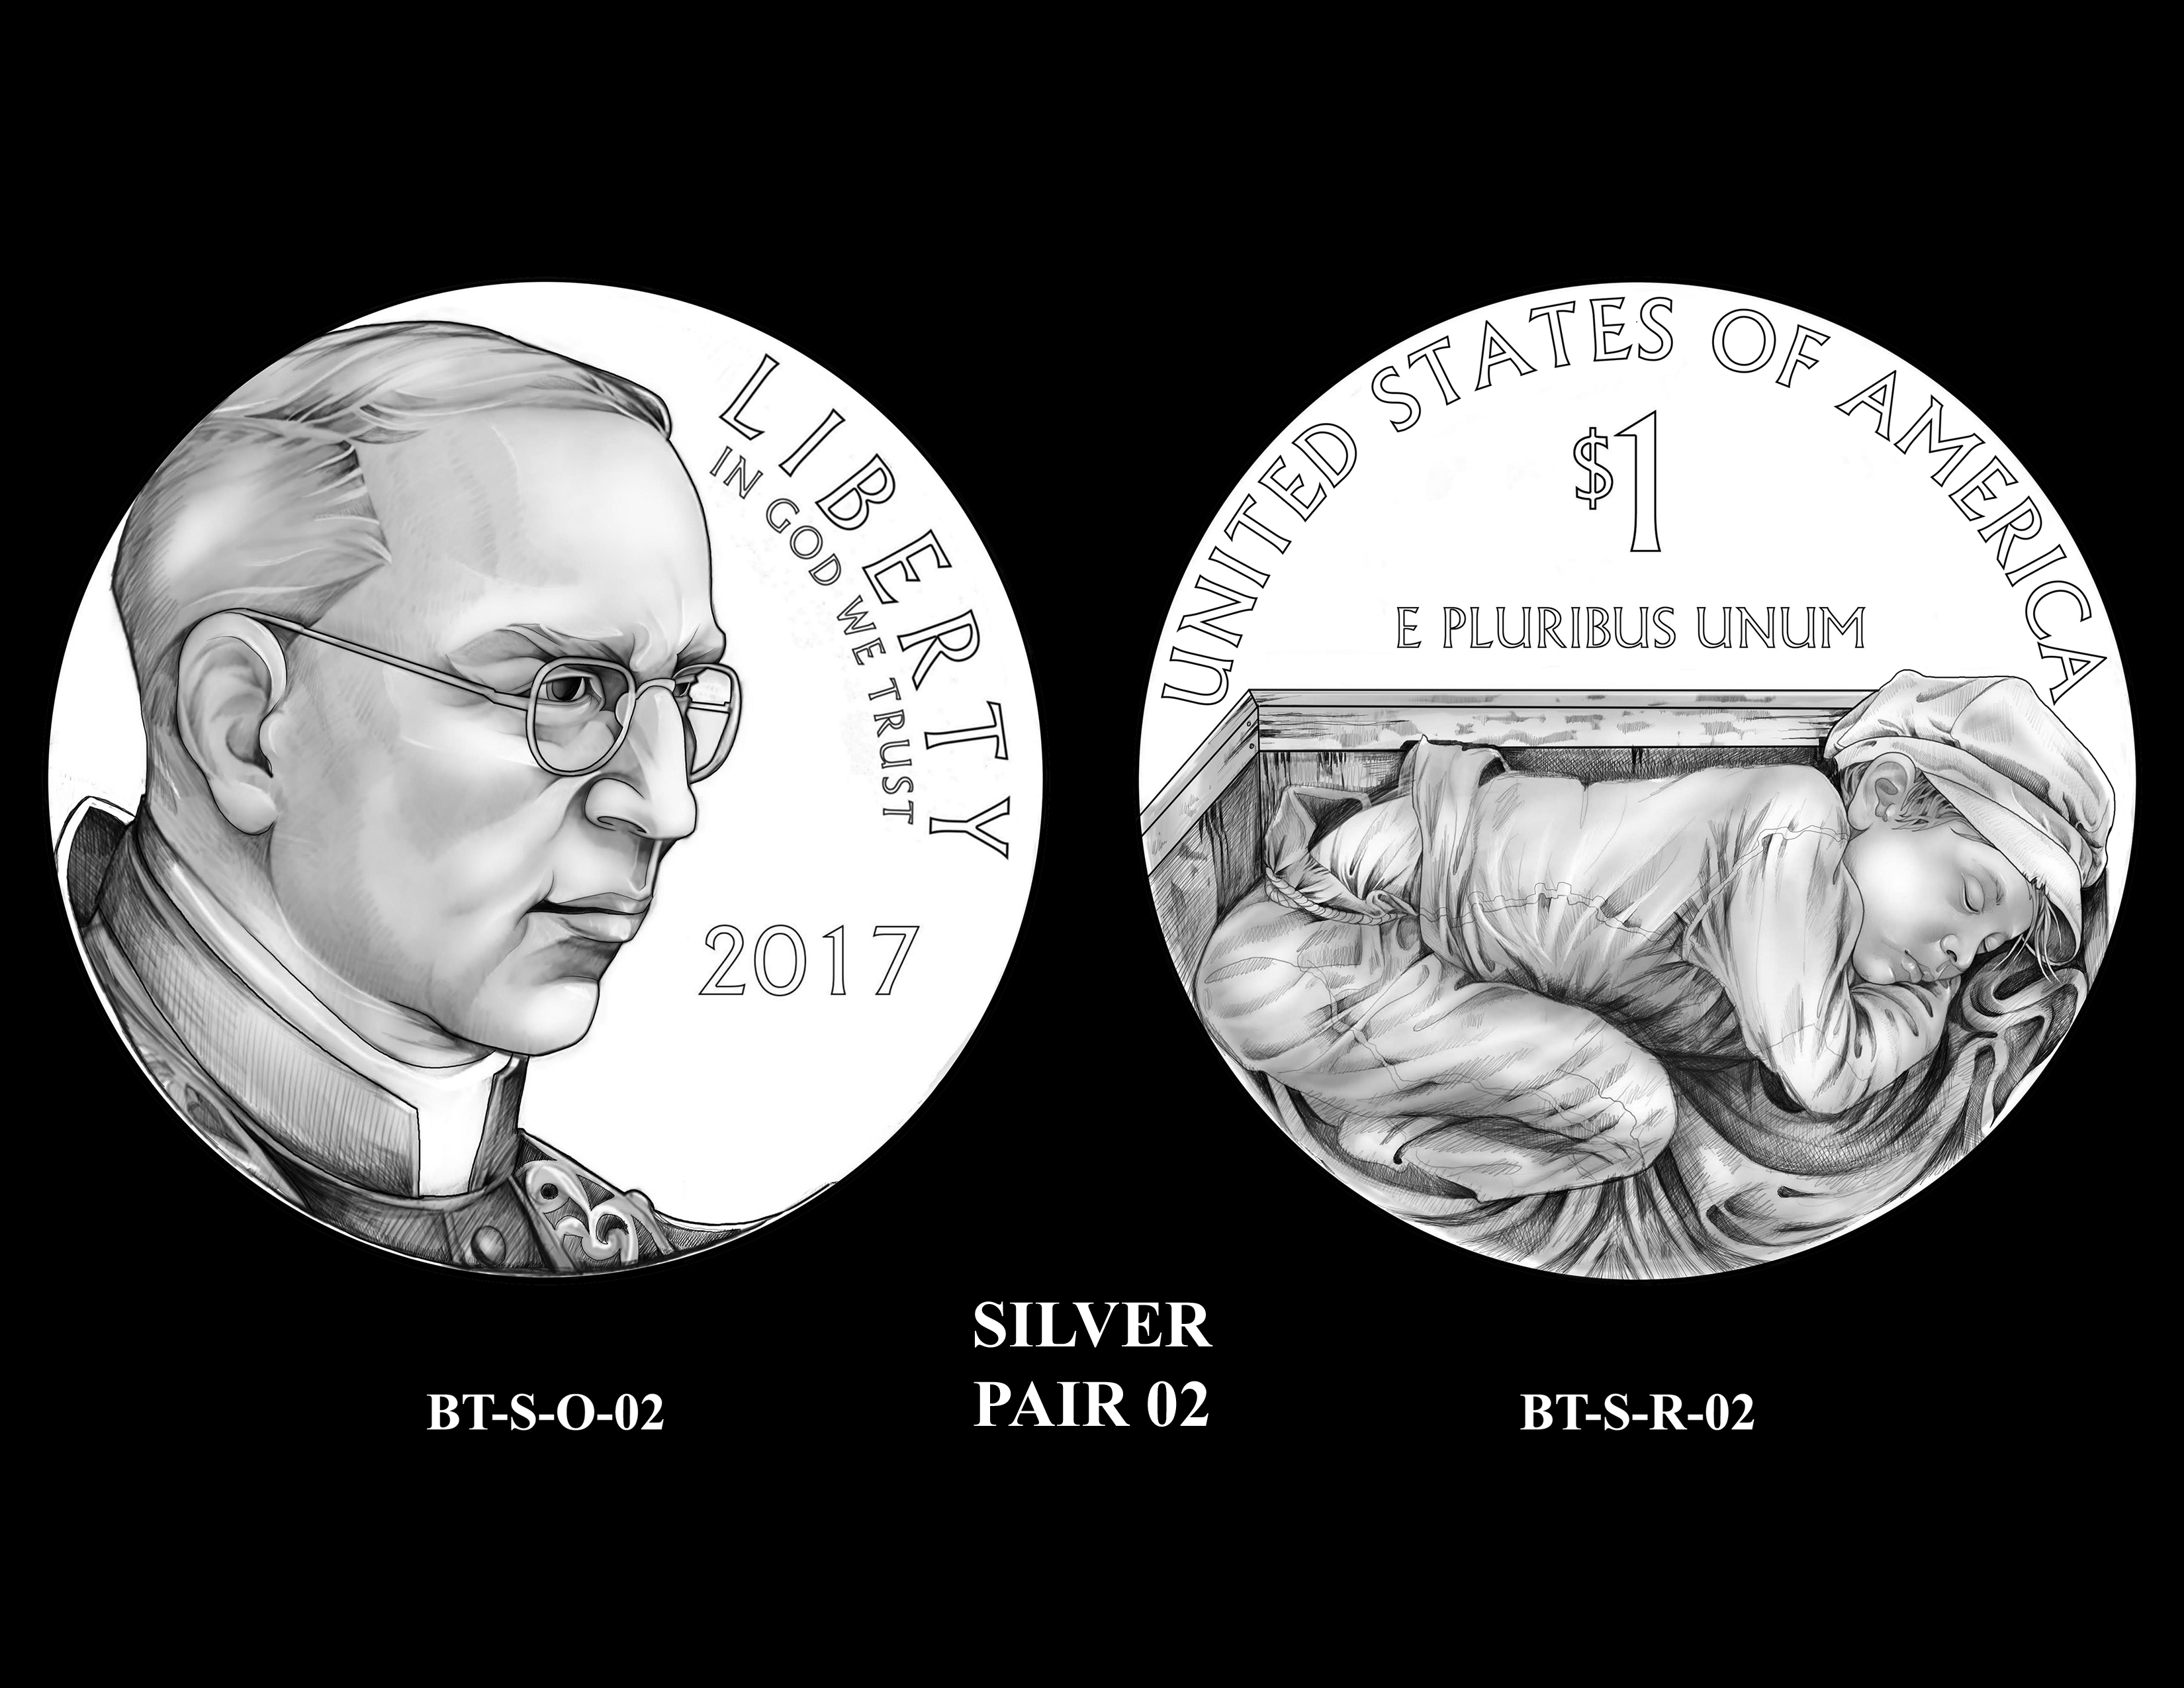 Silver-Pair-02 -- 2017 Boystown Centennial Commemorative Coin  Program